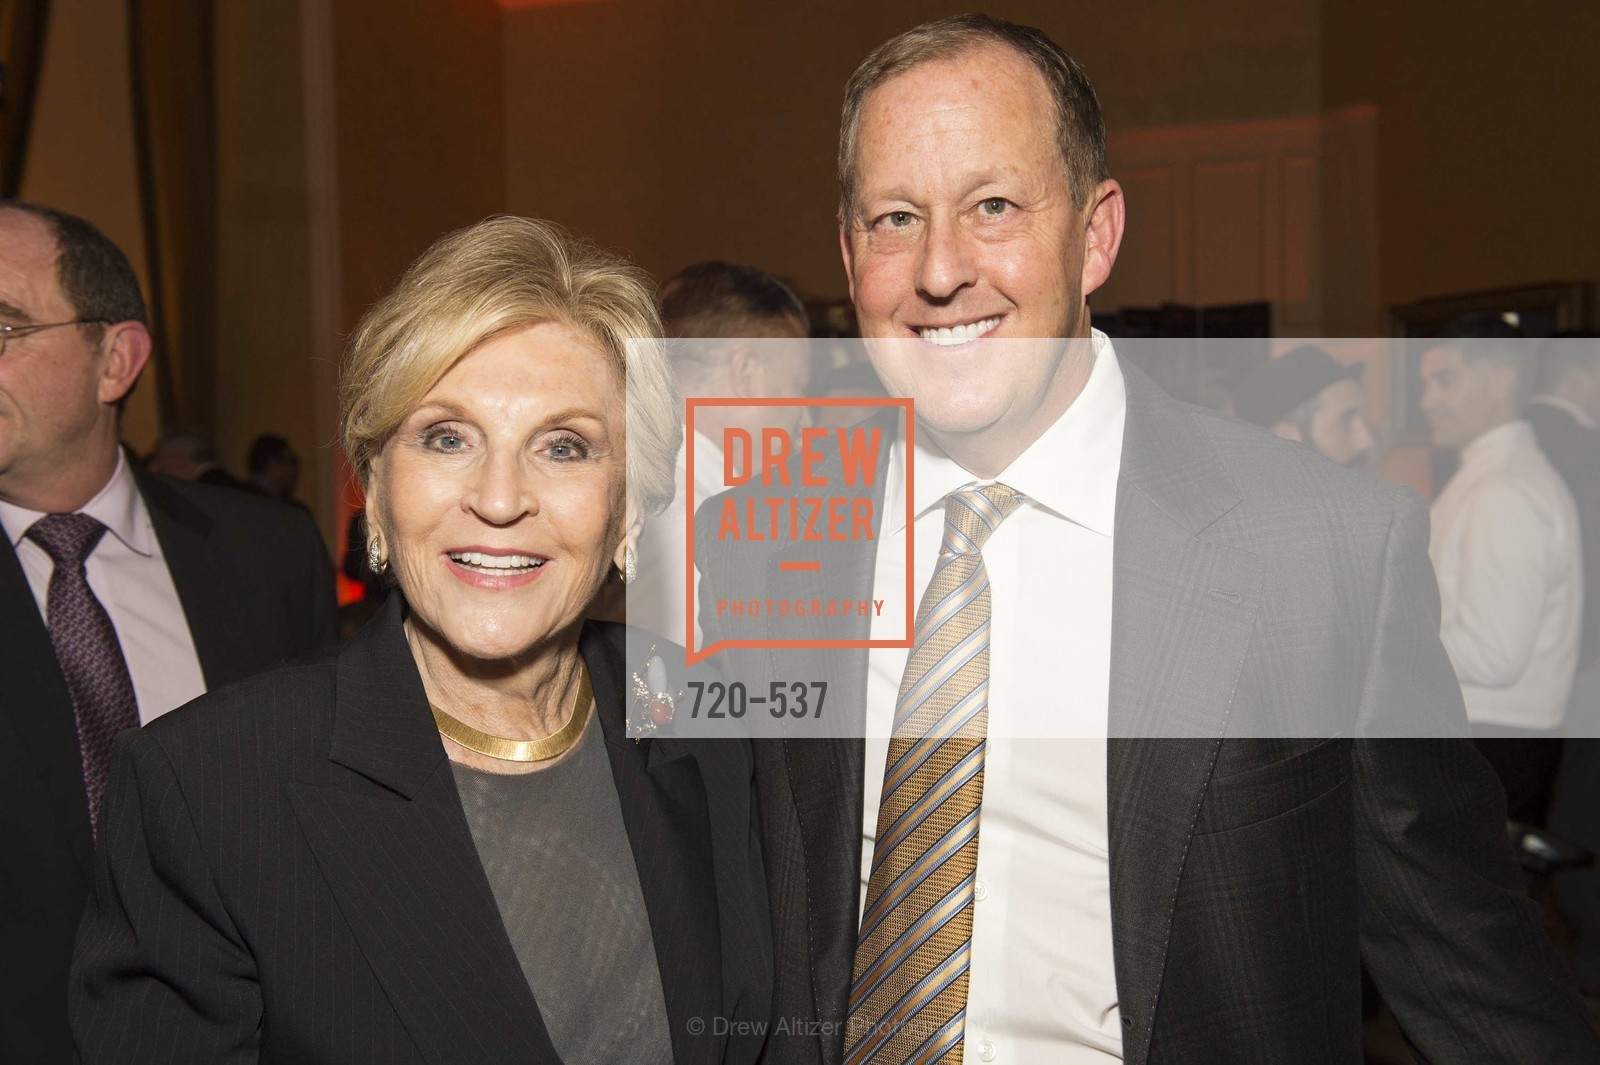 Lois Lehrman, Michael Rosenfeld, TOP OF THE MARK'S 75TH Anniversary Party, US, November 7th, 2014,Drew Altizer, Drew Altizer Photography, full-service event agency, private events, San Francisco photographer, photographer California